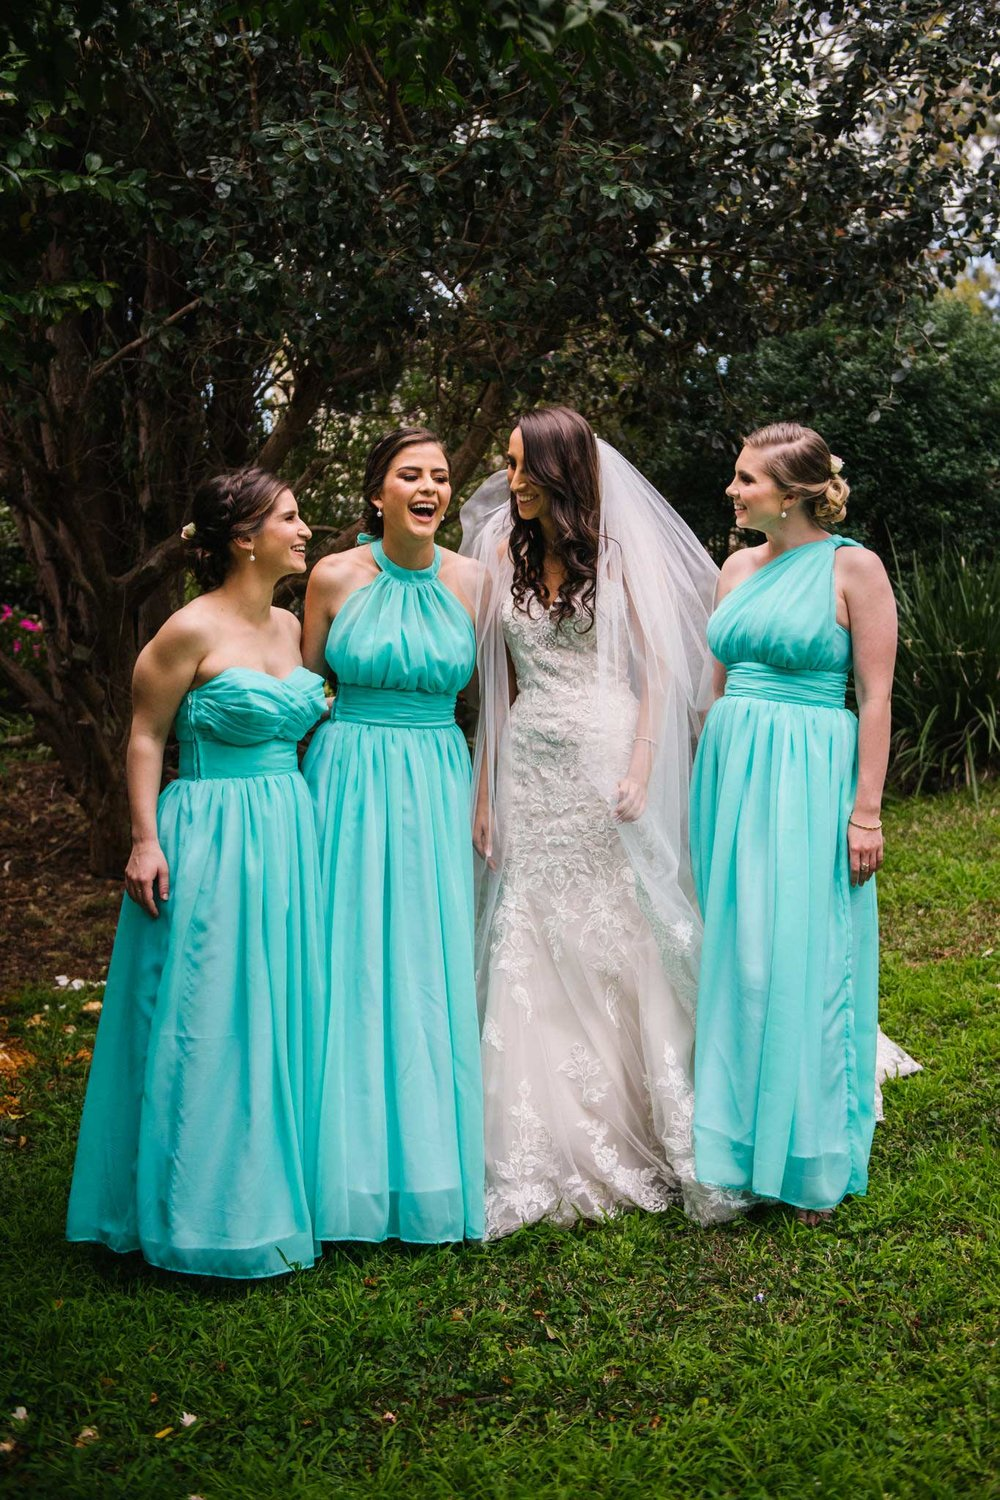 Bride and bridesmaids having fun before ceremony begins